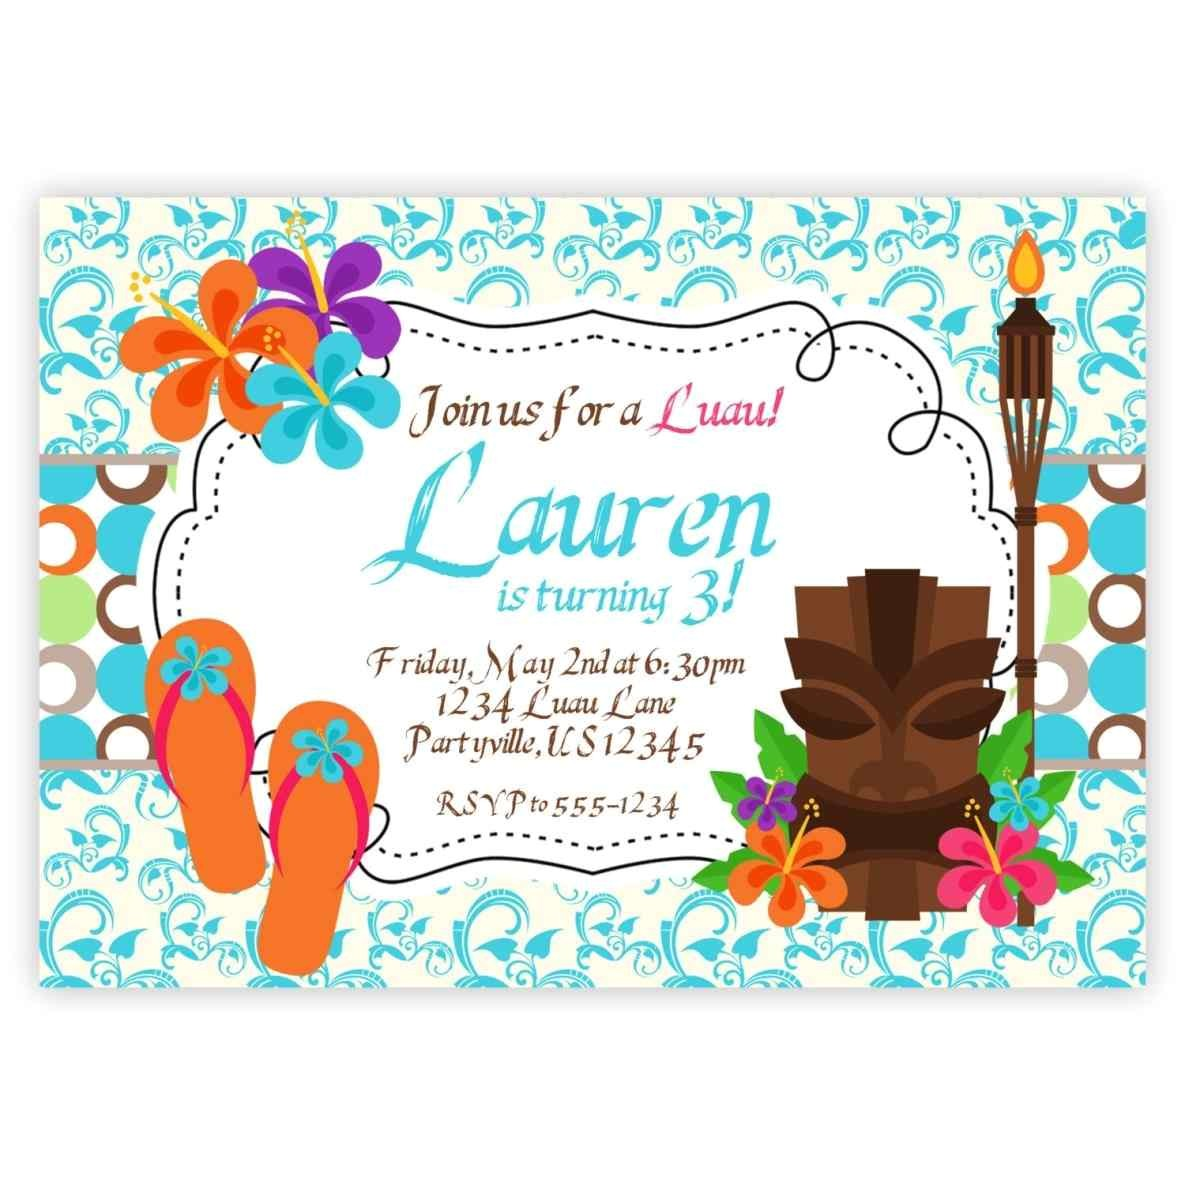 print at home diy invitation blank luau party invitations printable birthday little girl